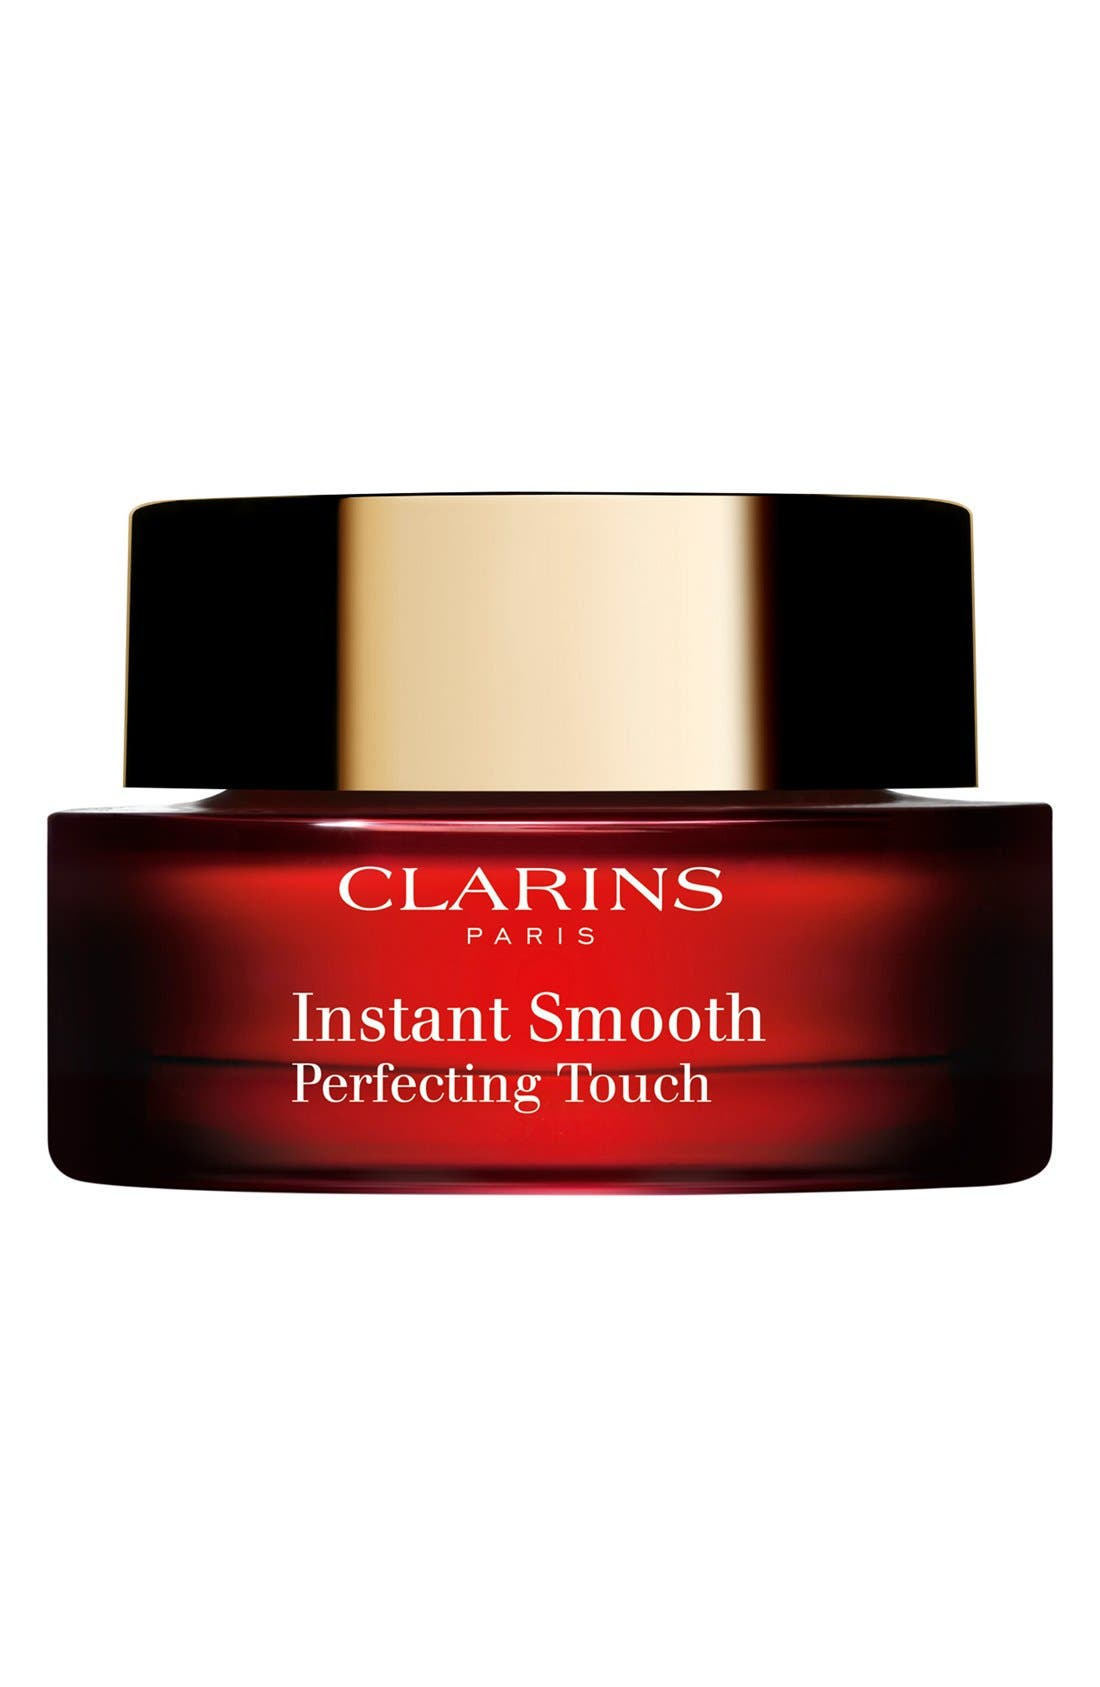 Clarins 'Instant Smooth' Perfecting Touch